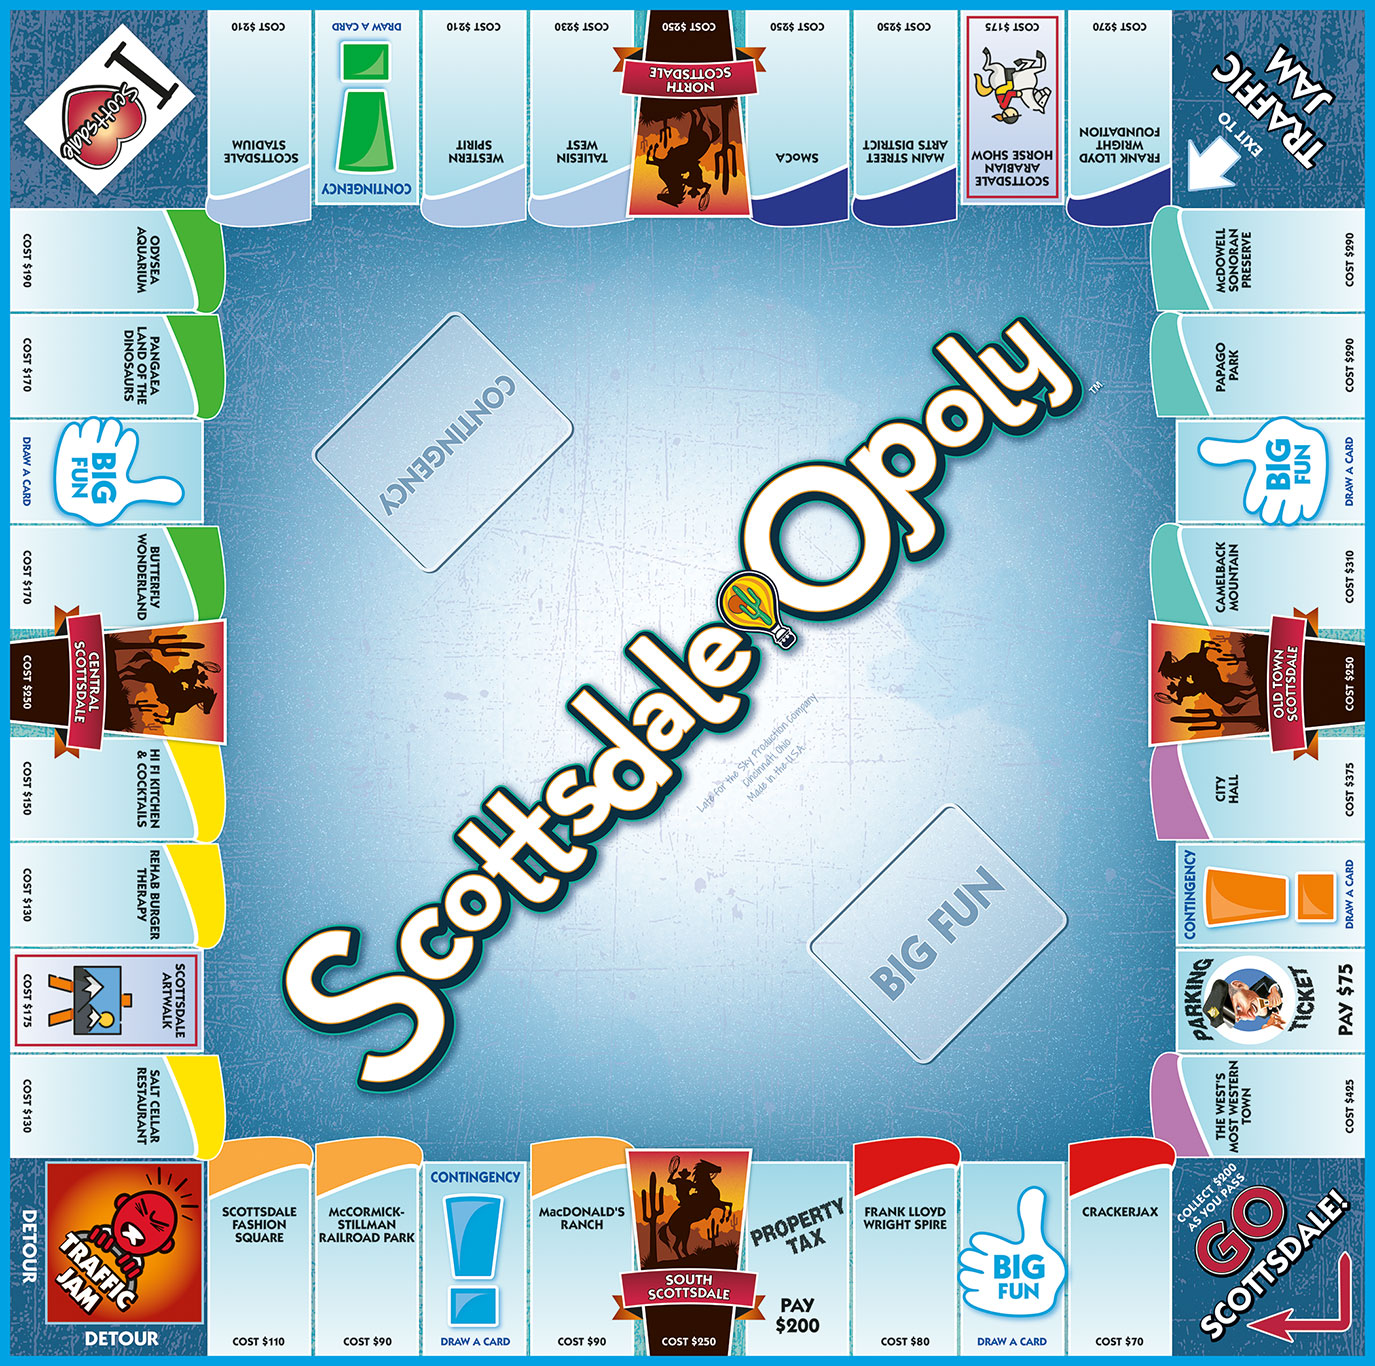 SCOTTSDALE-OPOLY Board Game